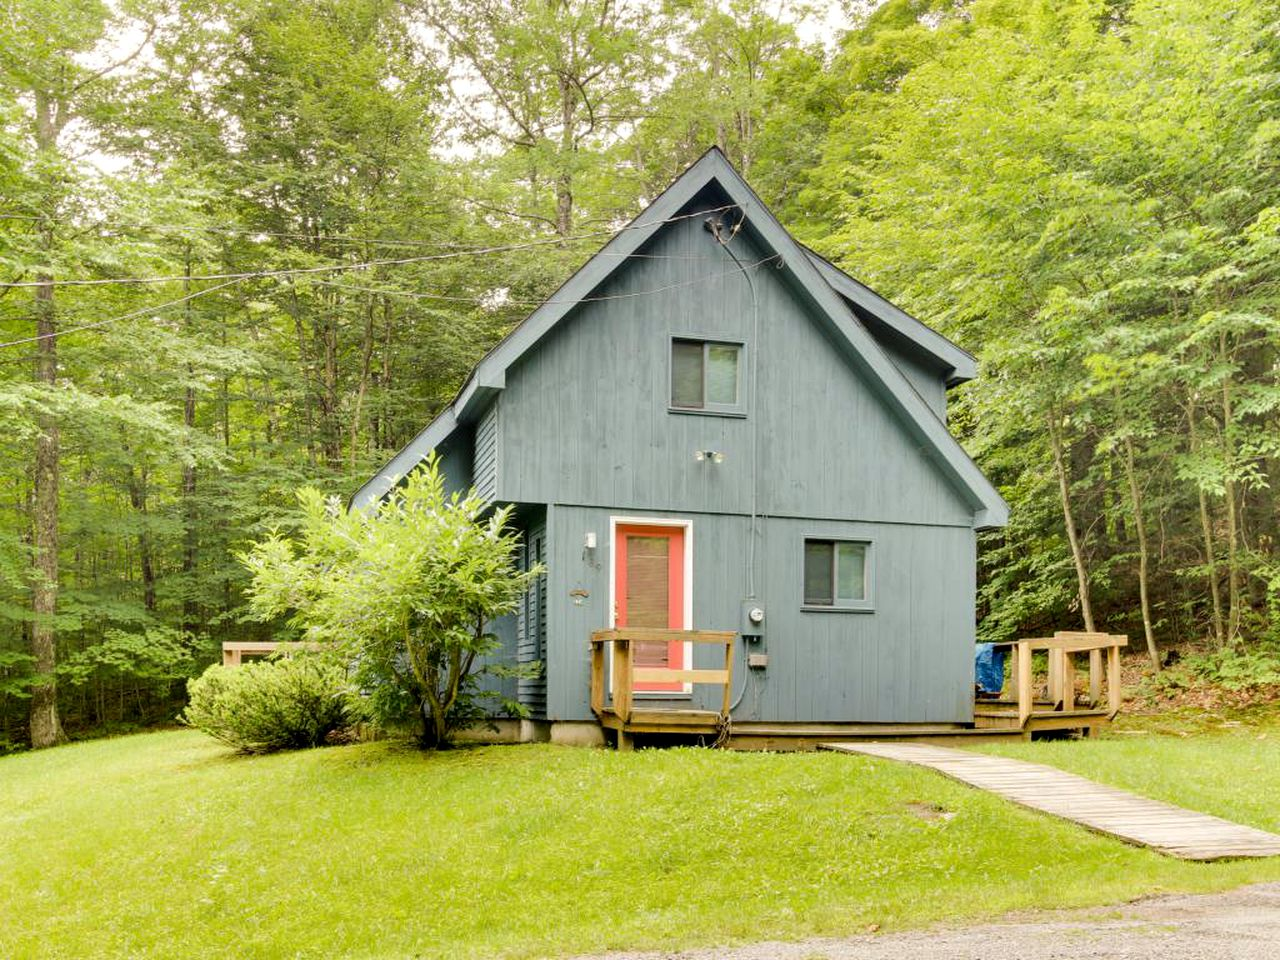 Blue cabin rental surrounded by trees in West Dover, Vermont.